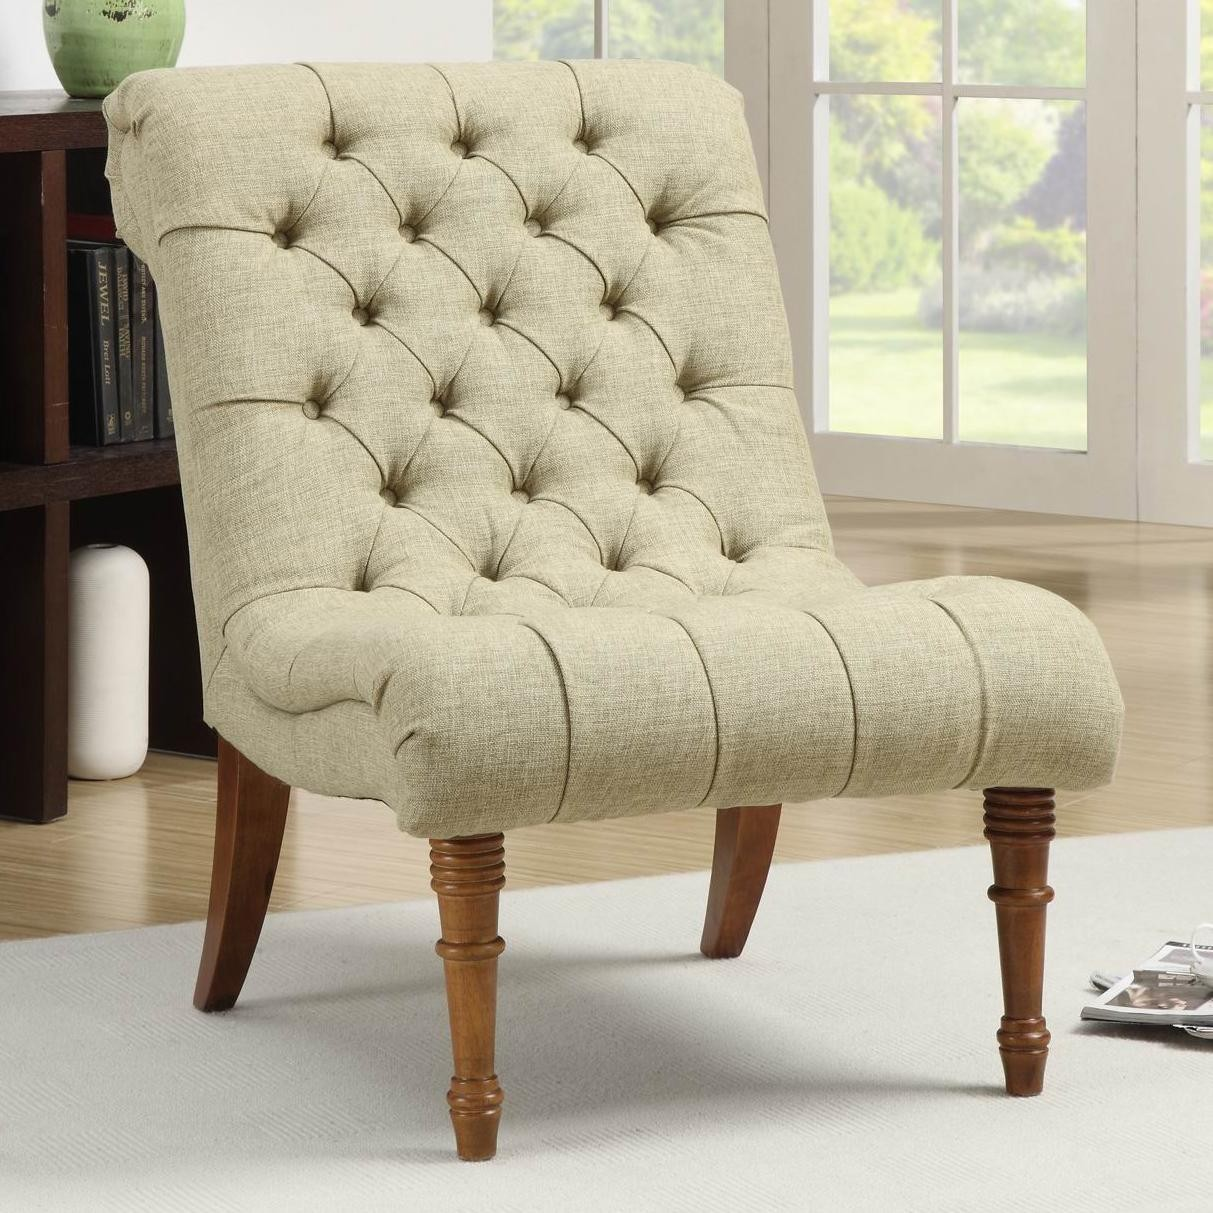 902218 Tufted Accent Chair From Coaster 902218 Coleman